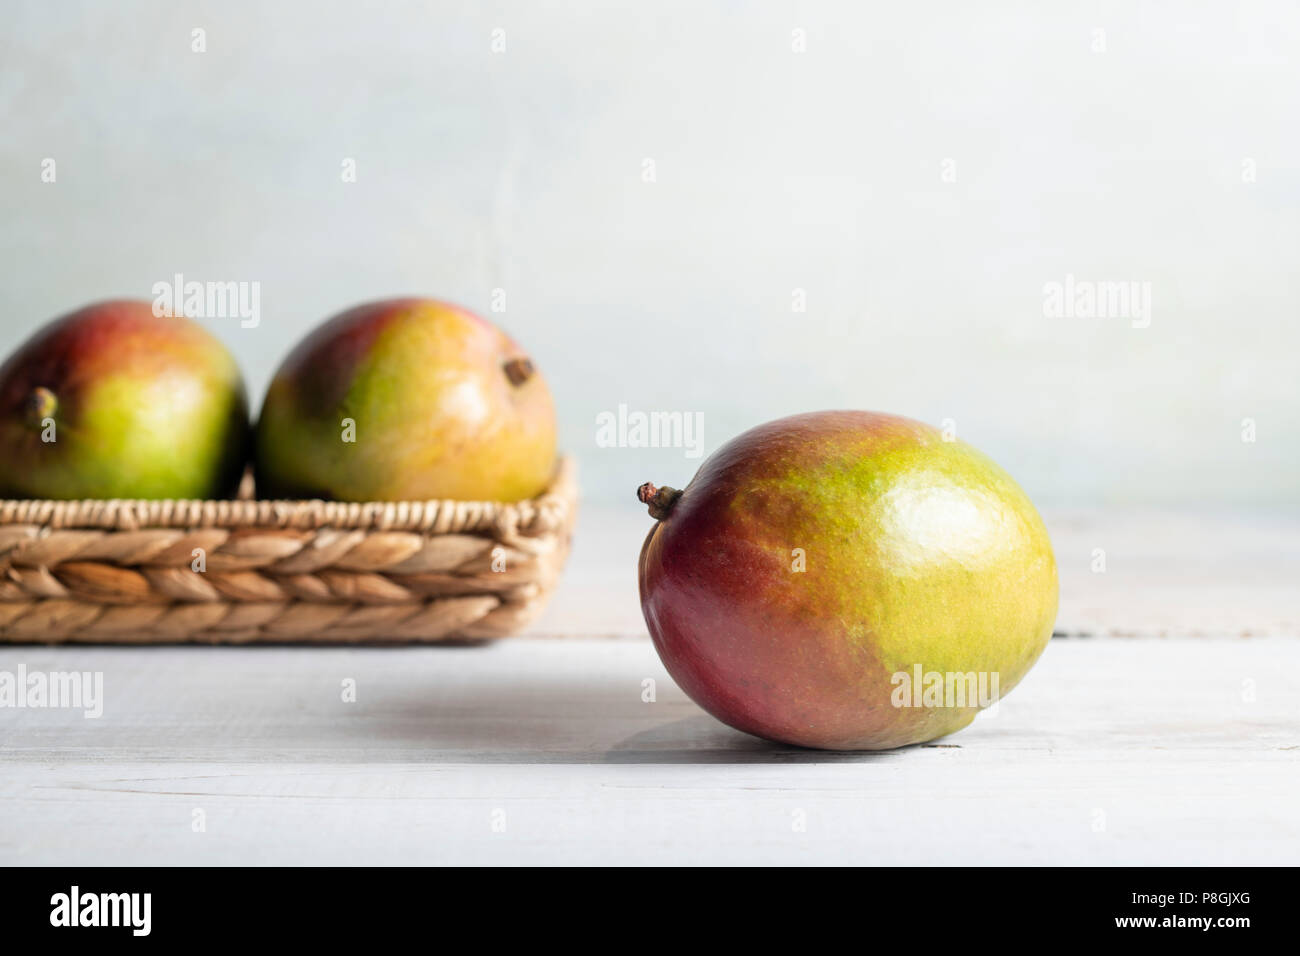 Three ripe mangoes in a wicker basket on a whitewash wood table with bright, natural light. - Stock Image